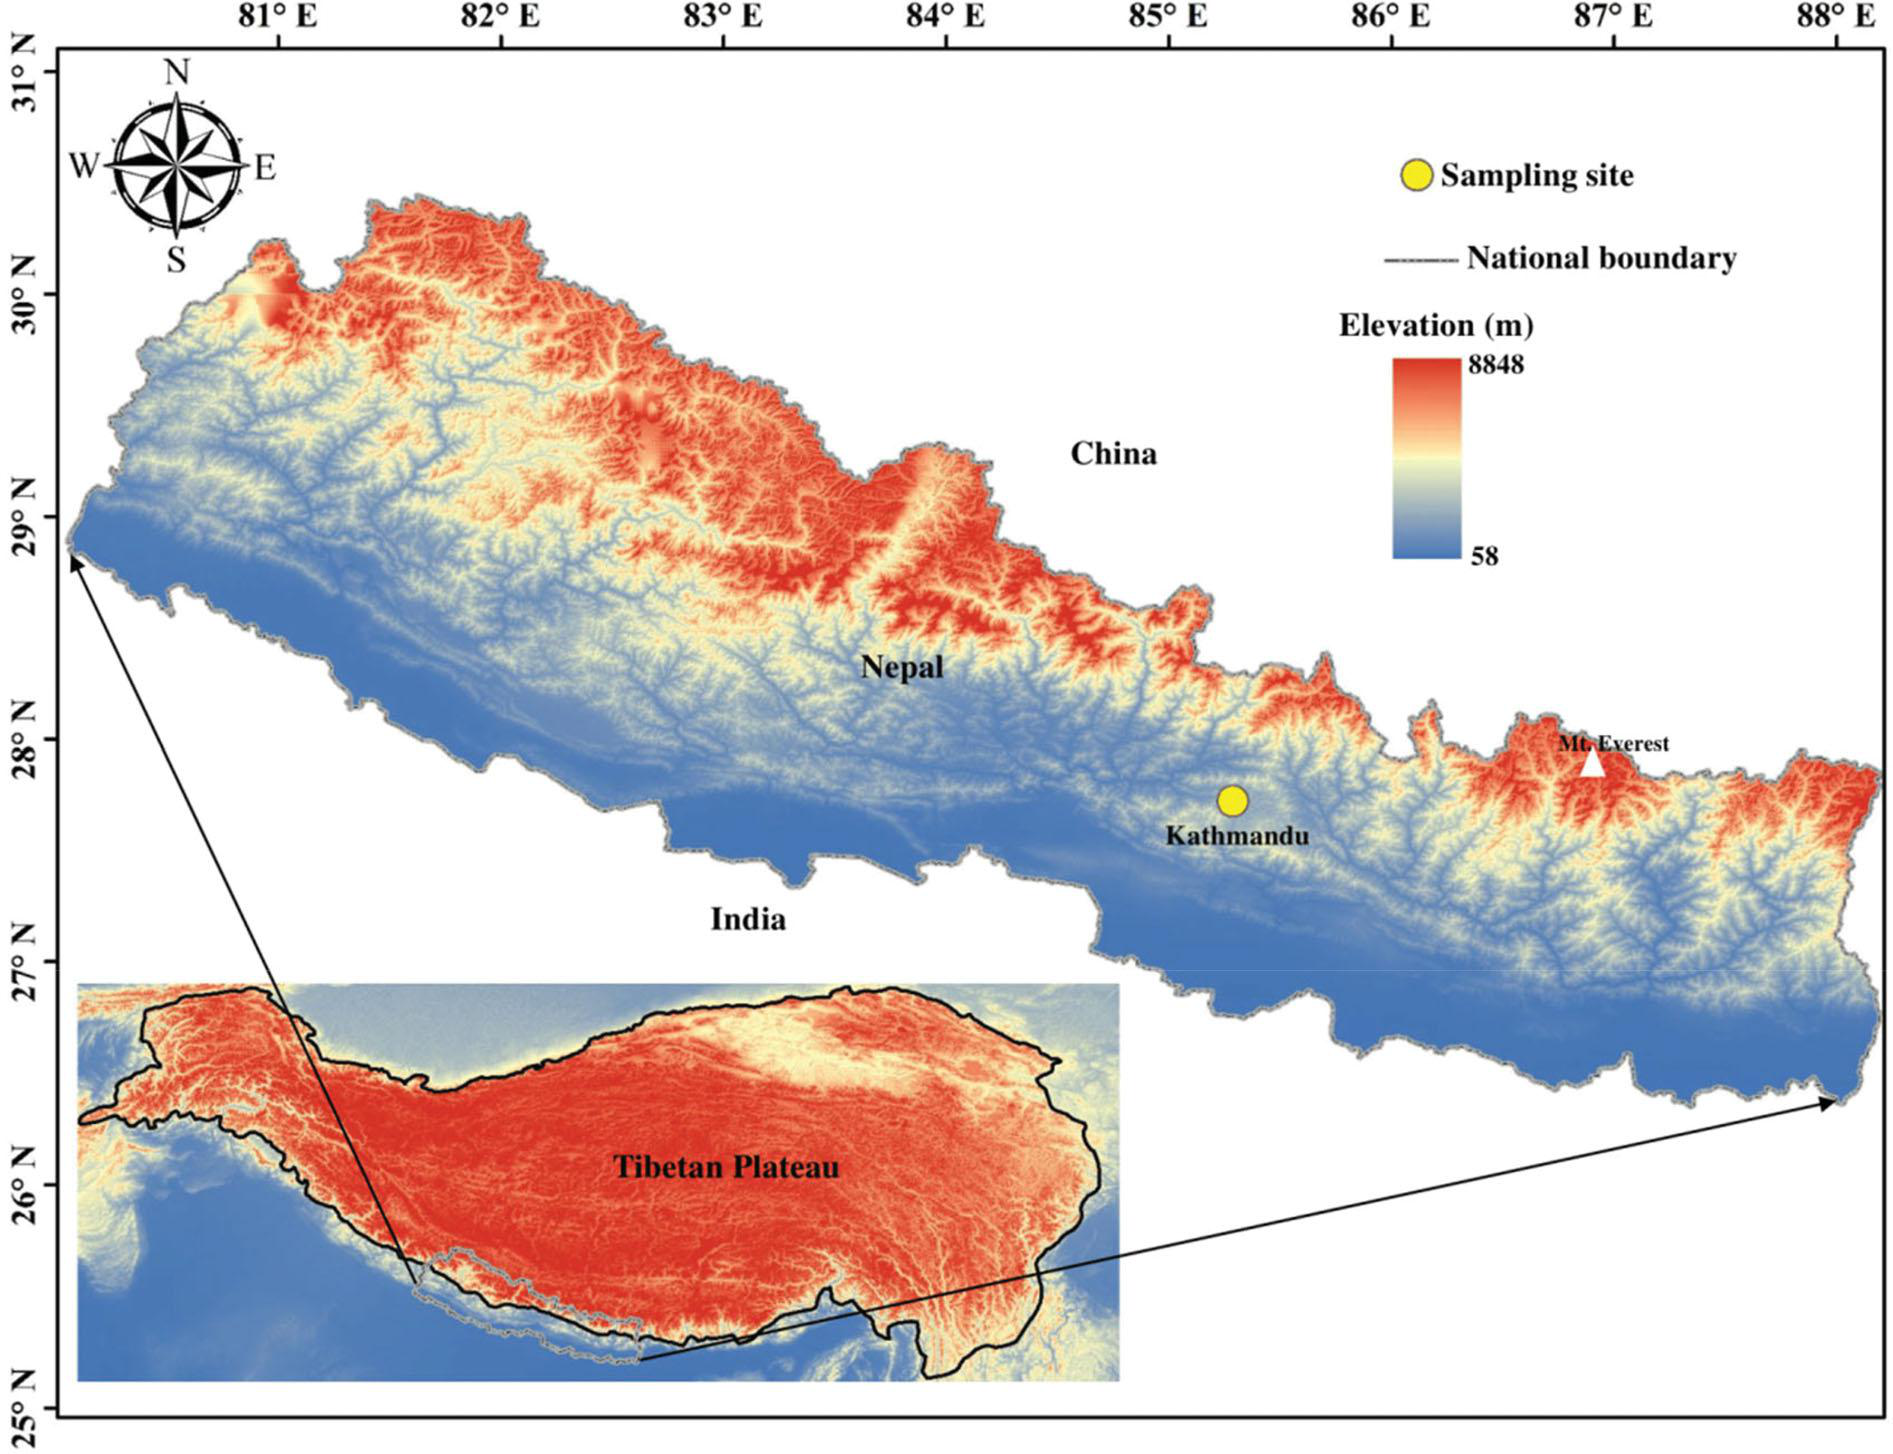 Hydrogen and oxygen stable isotope data set of Kathmandu precipitation (2016-2018)